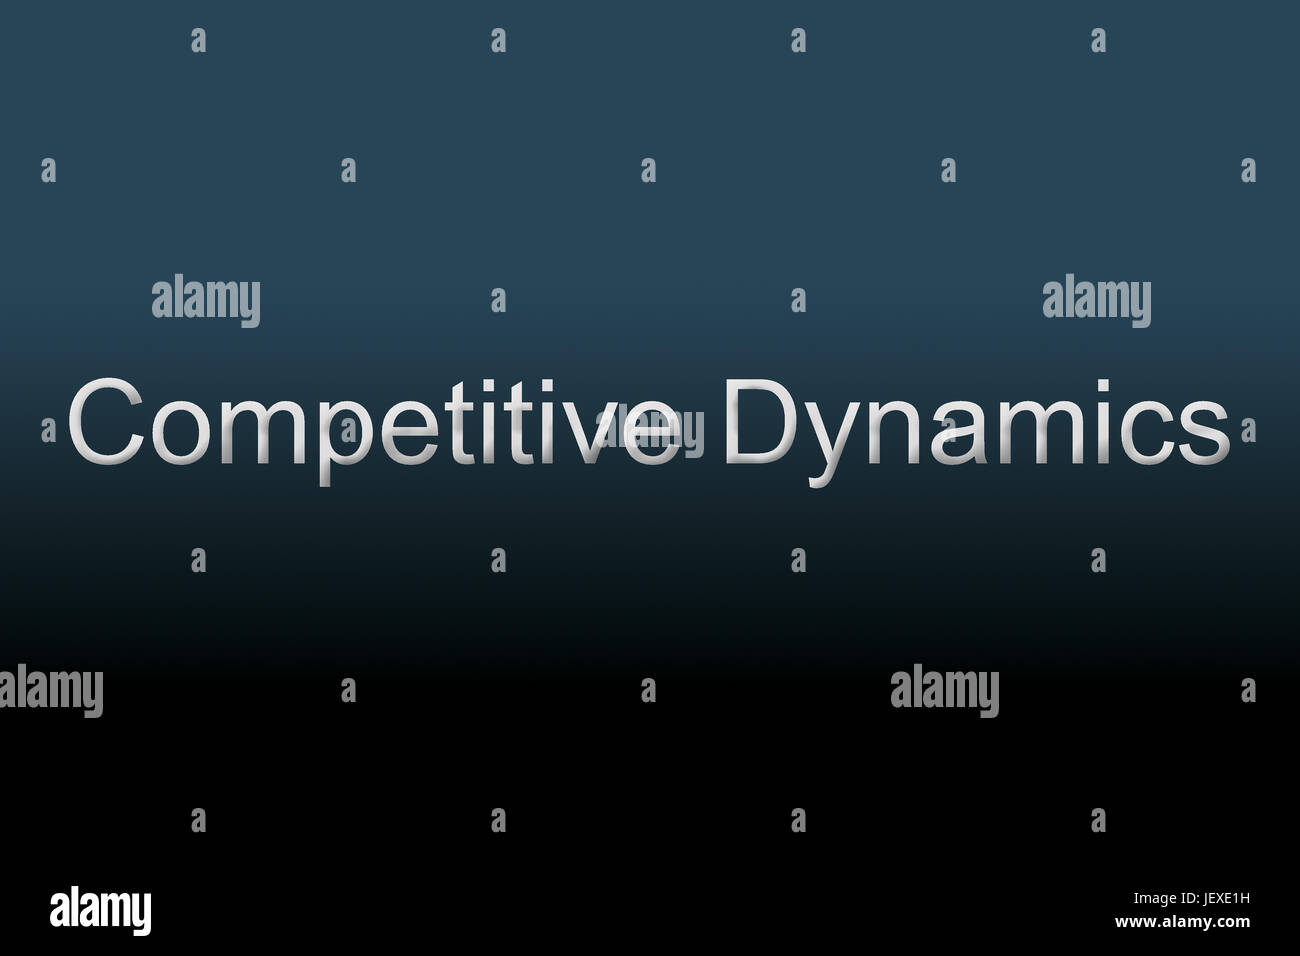 Competitive Dynamics concept - Stock Image